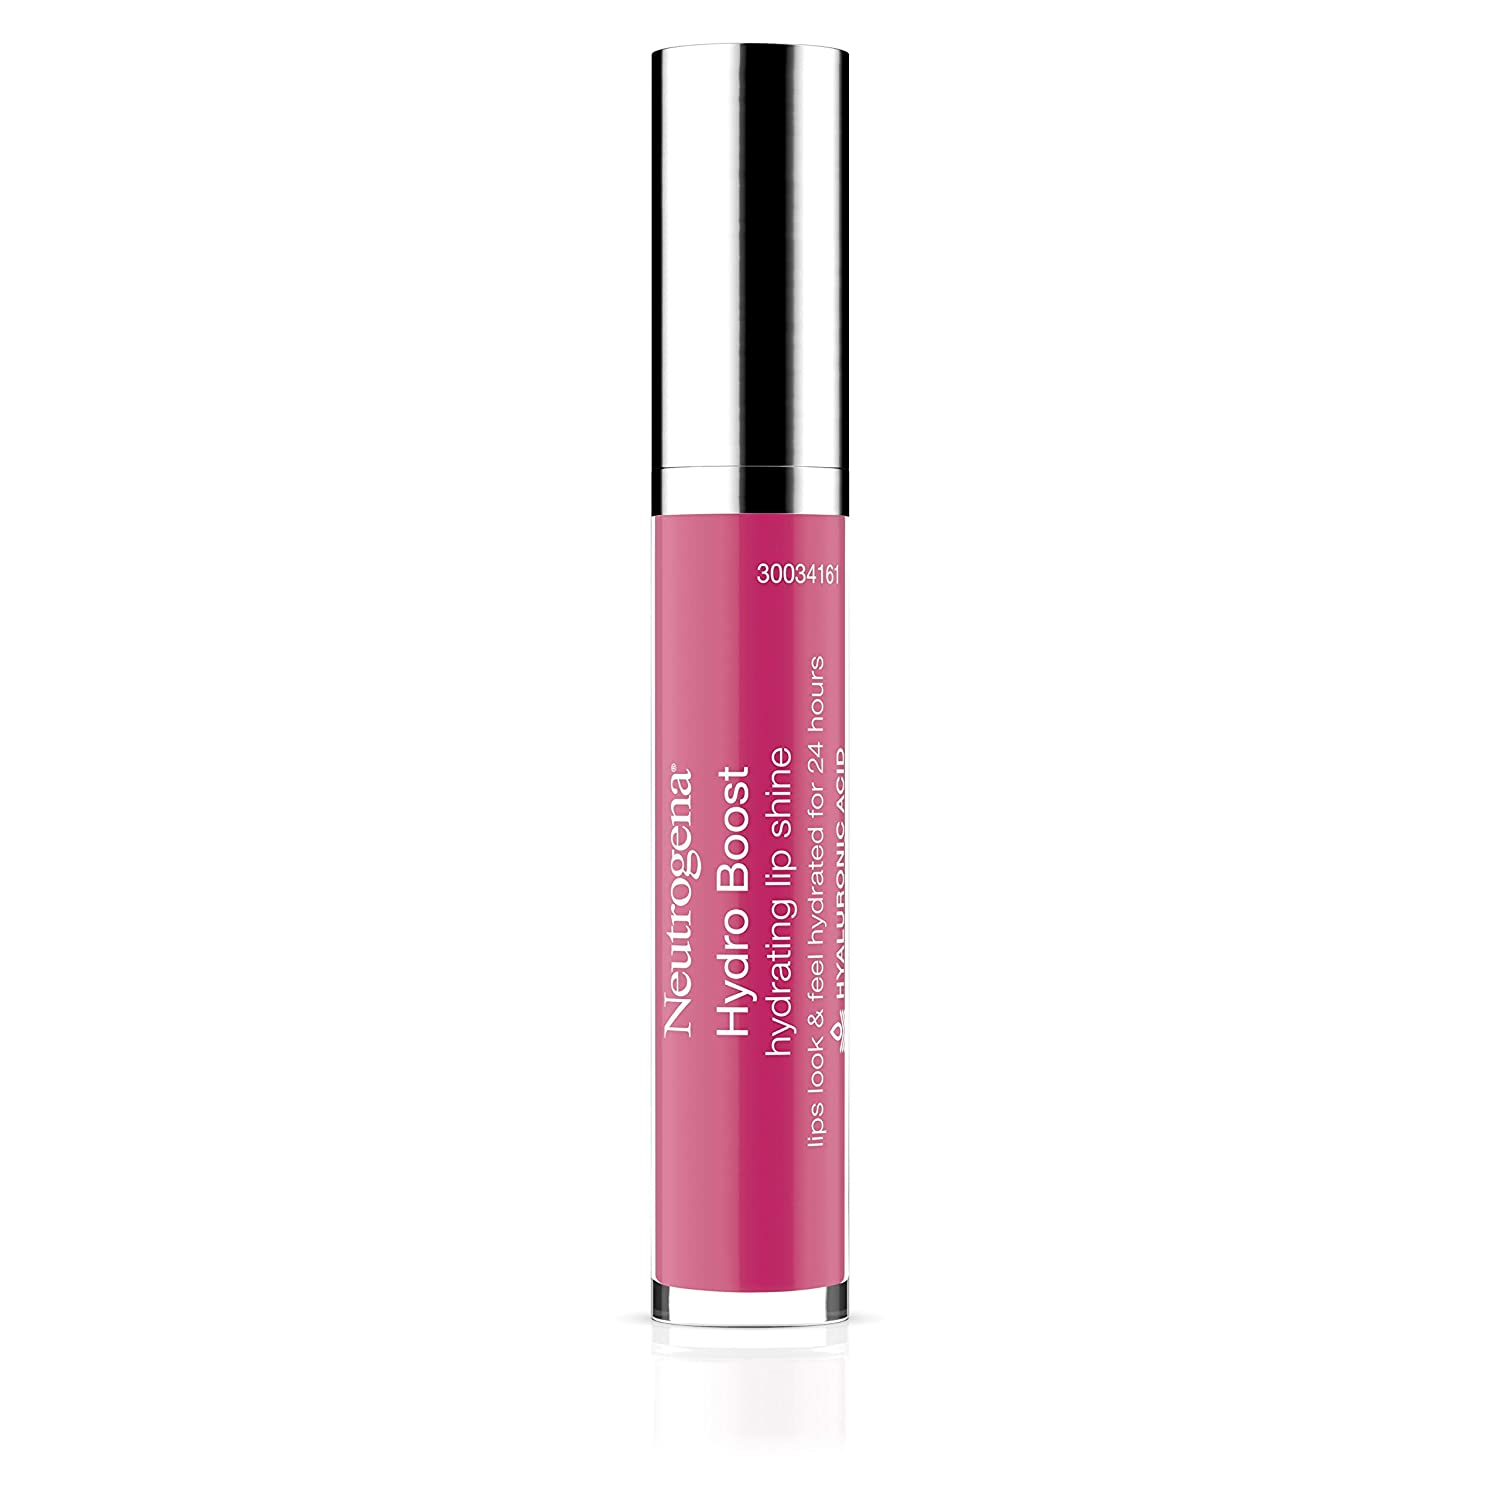 Neutrogena Hydro Boost Hydrating Lip Shine, 60 Vibrant Raspberry Color 0.10 Oz